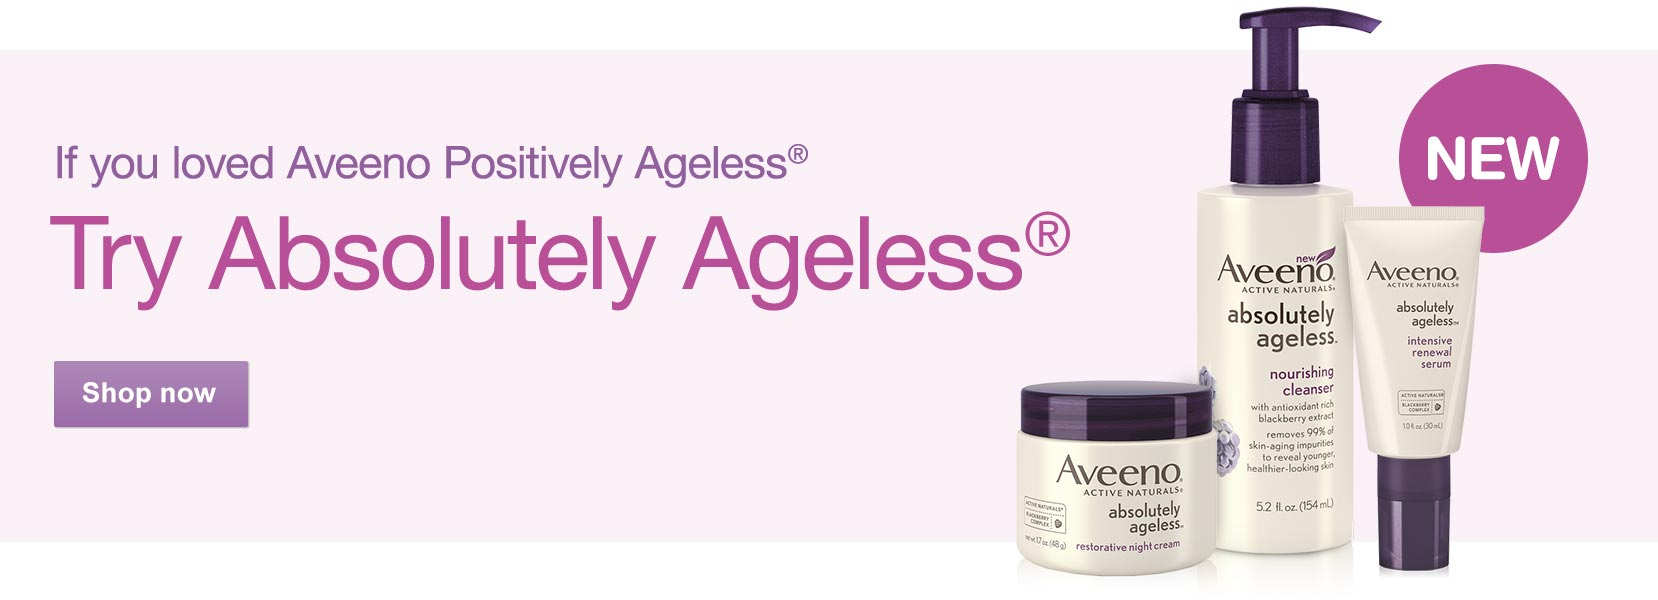 New! If you loved Aveeno Positively Ageless(R), Try Absolutely Ageless(R). Shop now.